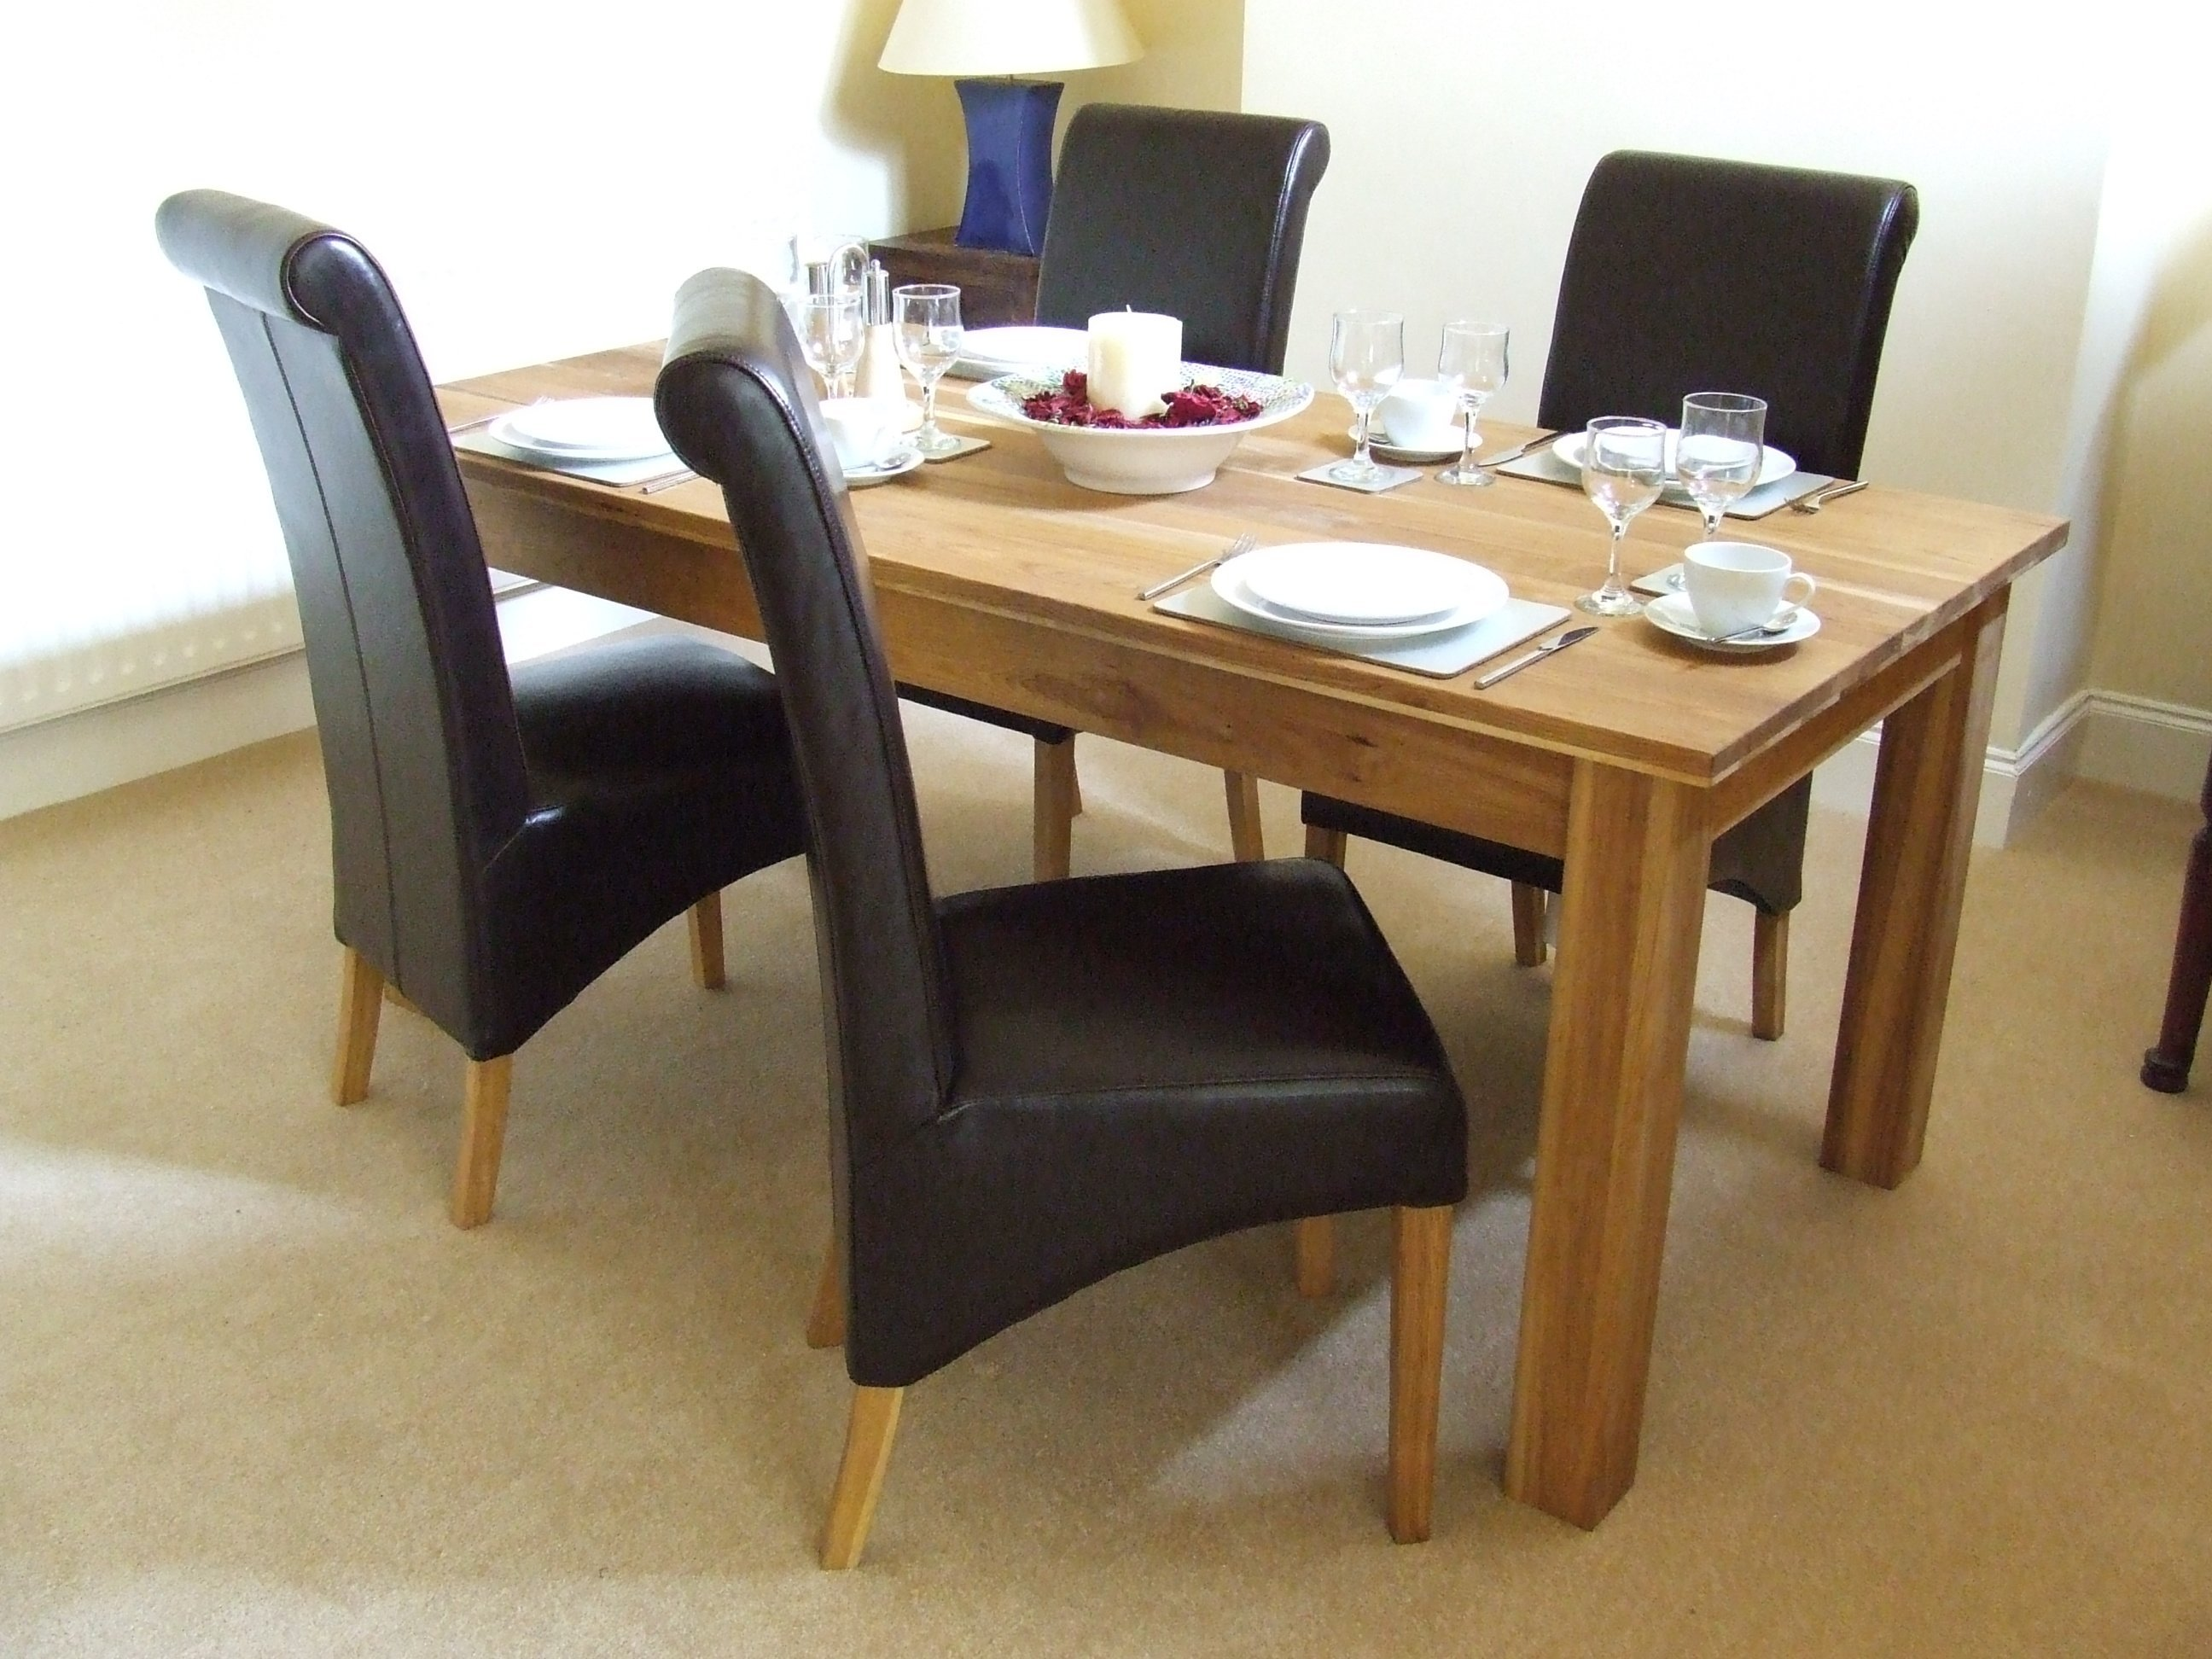 valencia oak furniture oak dining tables reviews : oak solid oak dining table 160cm from www.comparestoreprices.co.uk size 2592 x 1944 jpeg 637kB